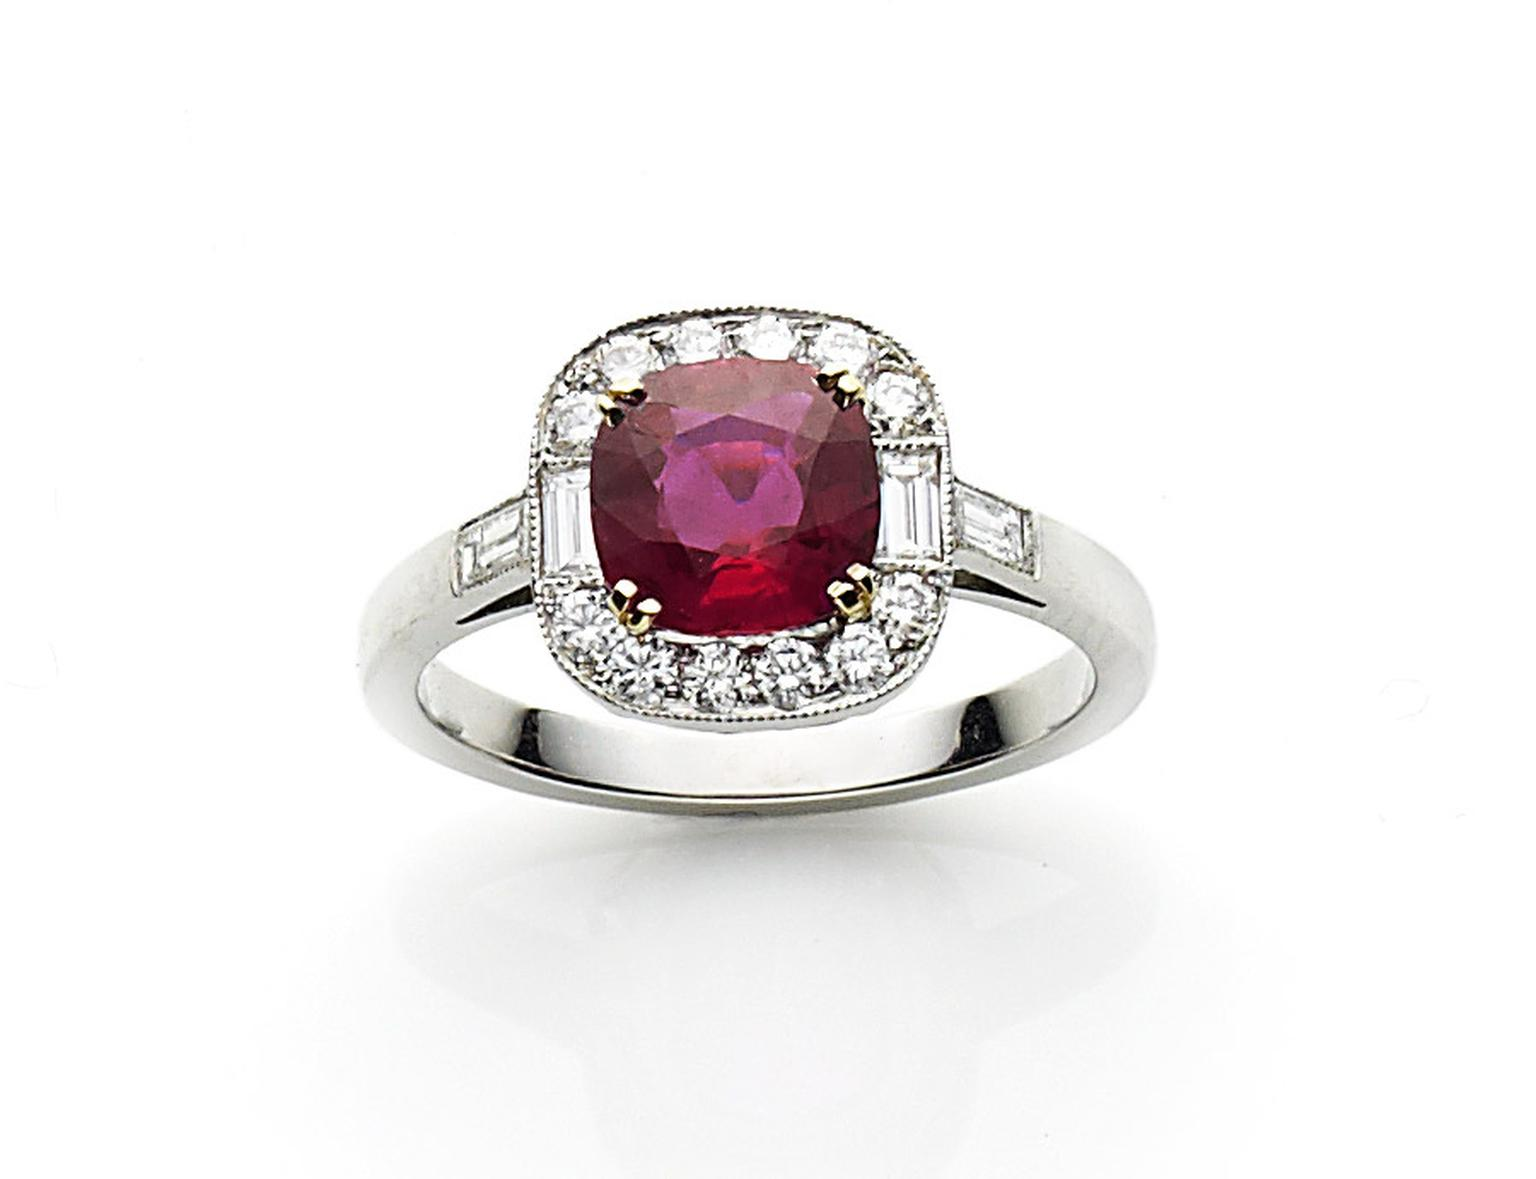 Burlington-Arcade-Ruby-and-diamond-cluster-ring-by-Richard-Ogden